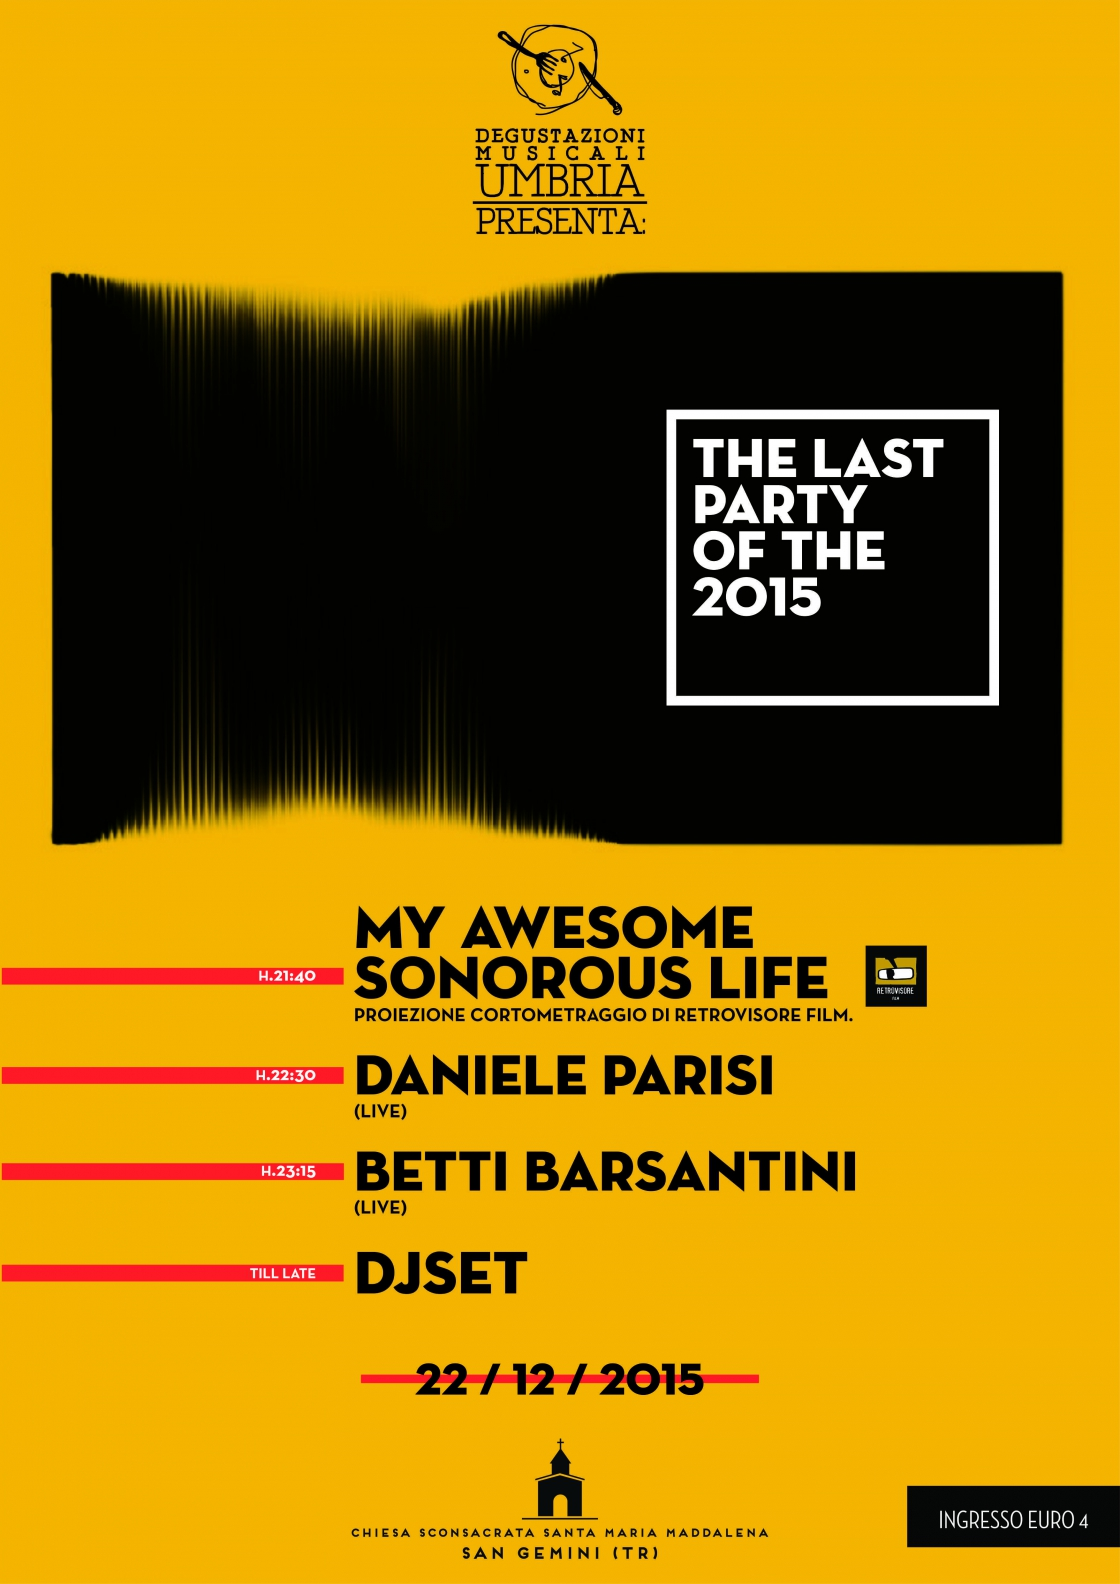 The last party of 2015: Retrovistore Film + Daniele Parisi + Betti Barsantini